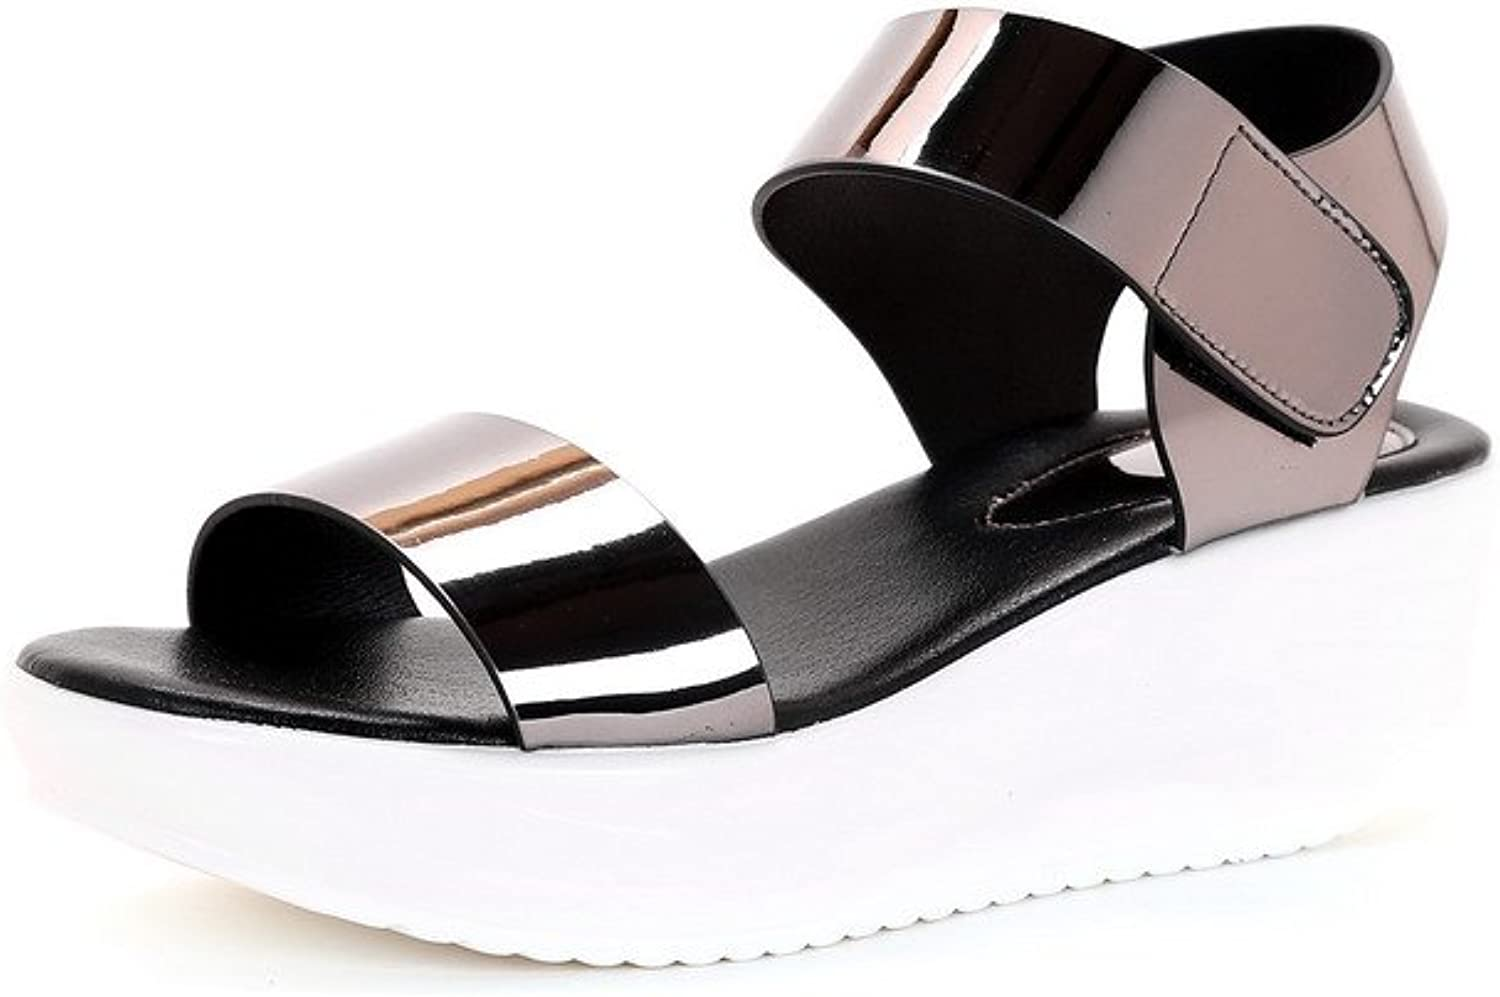 AmoonyFashion Women's Patent Leather Open-Toe Kitten-Heels Hook-and-Loop Solid Sandals